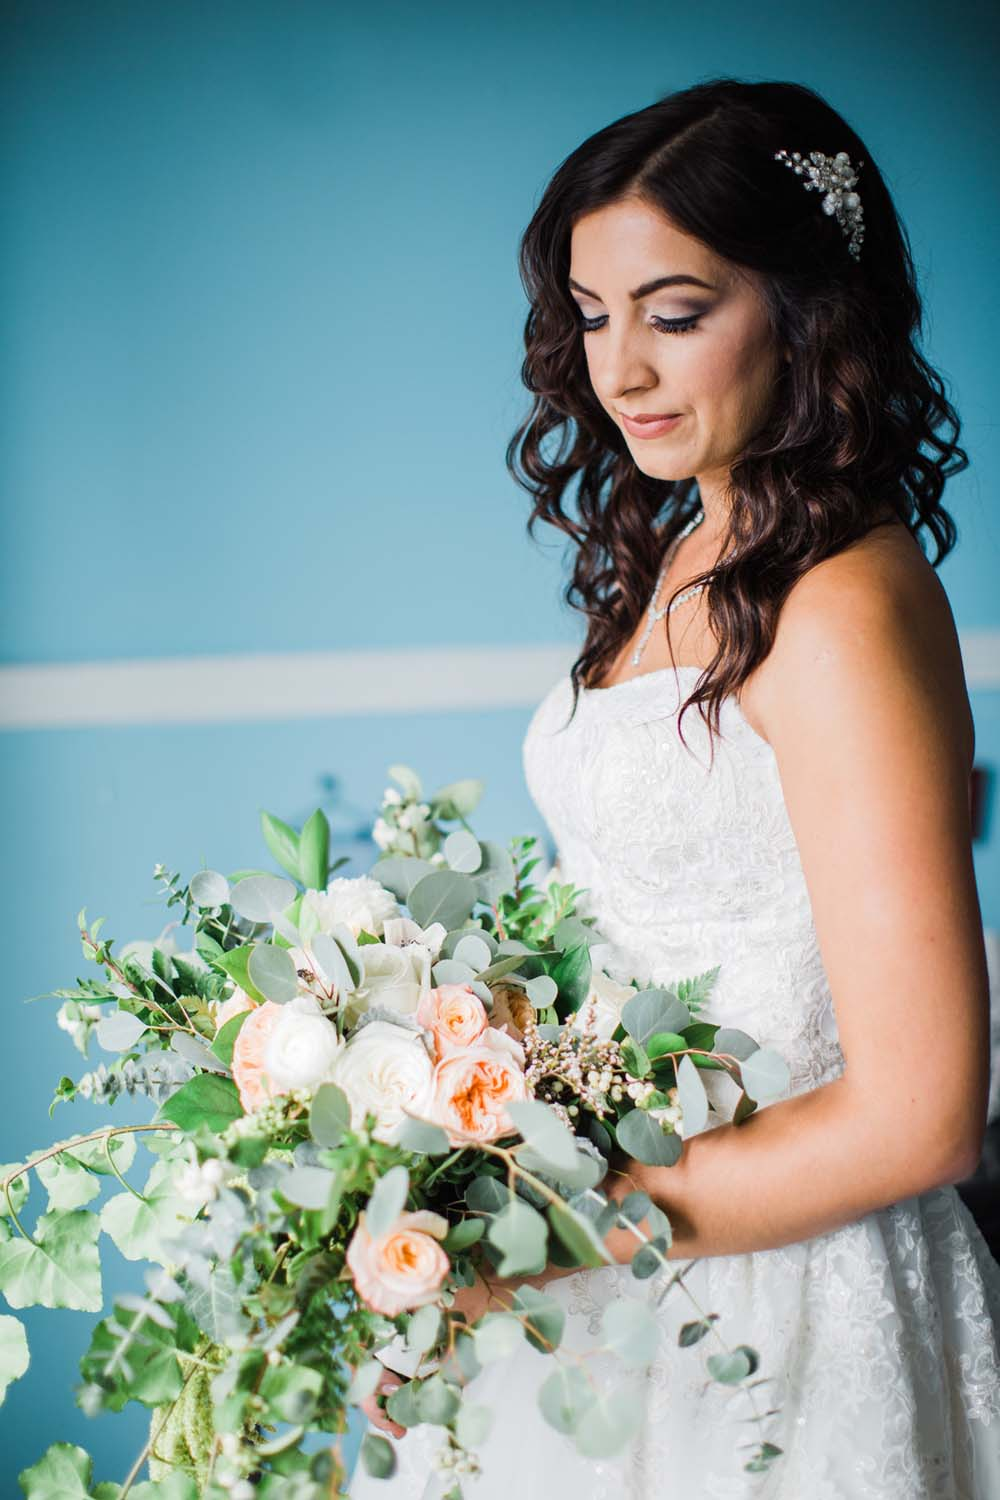 A Rustic, Whimsical Wedding in Tottenham - Makeup and bouquet details